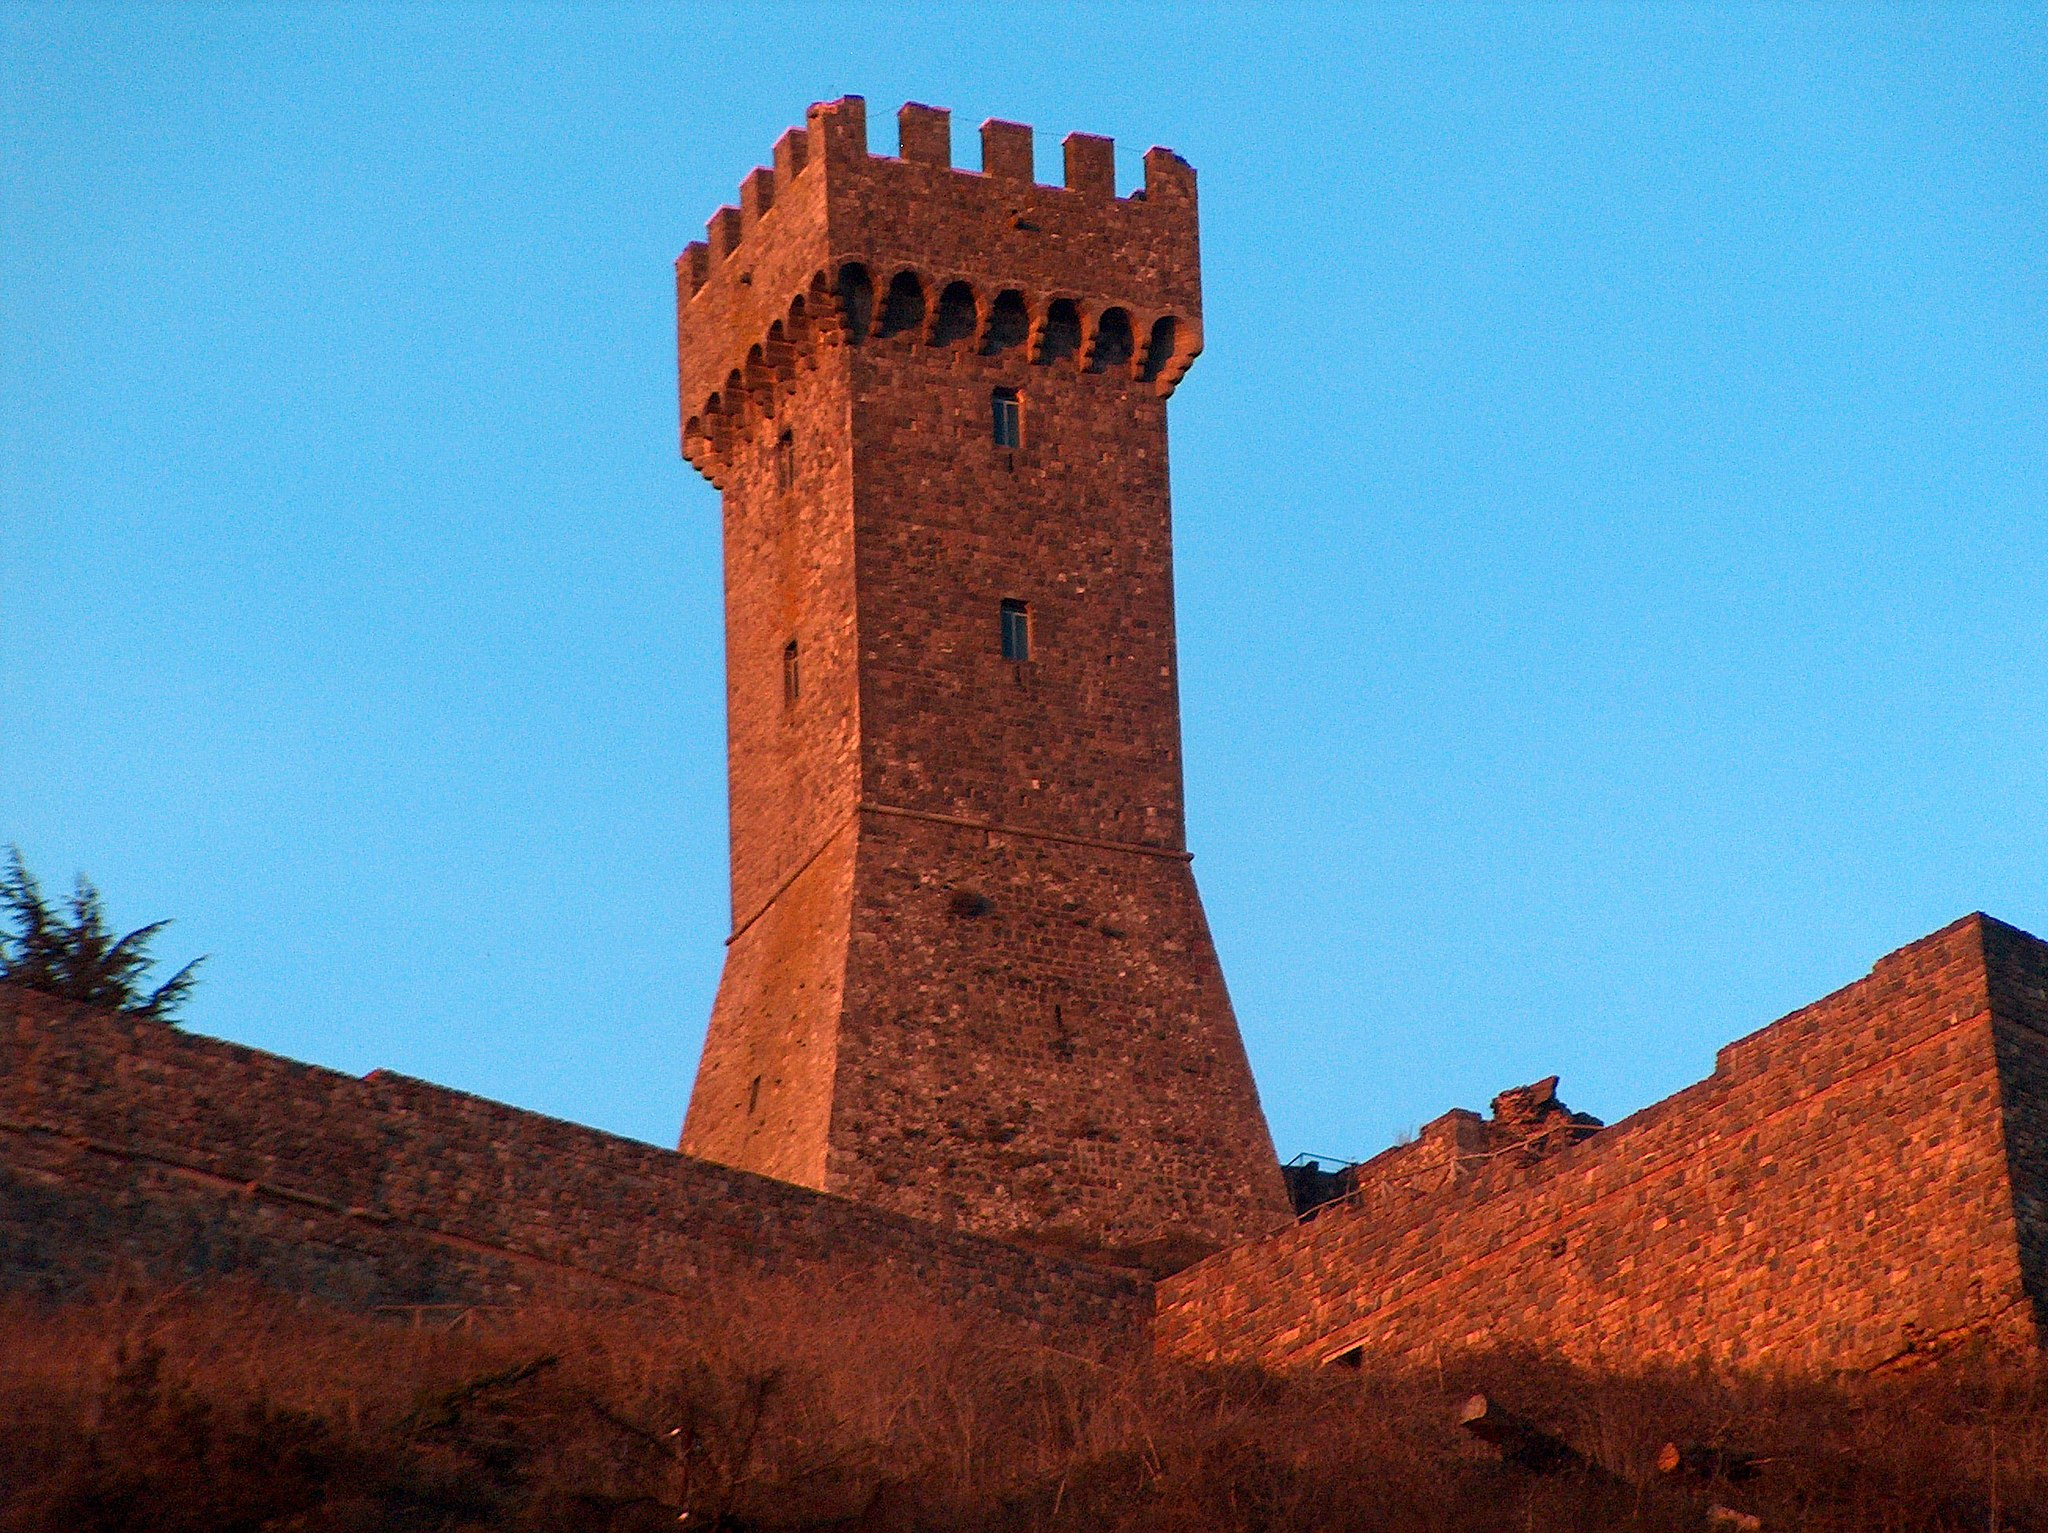 The castle at sunset - the tower